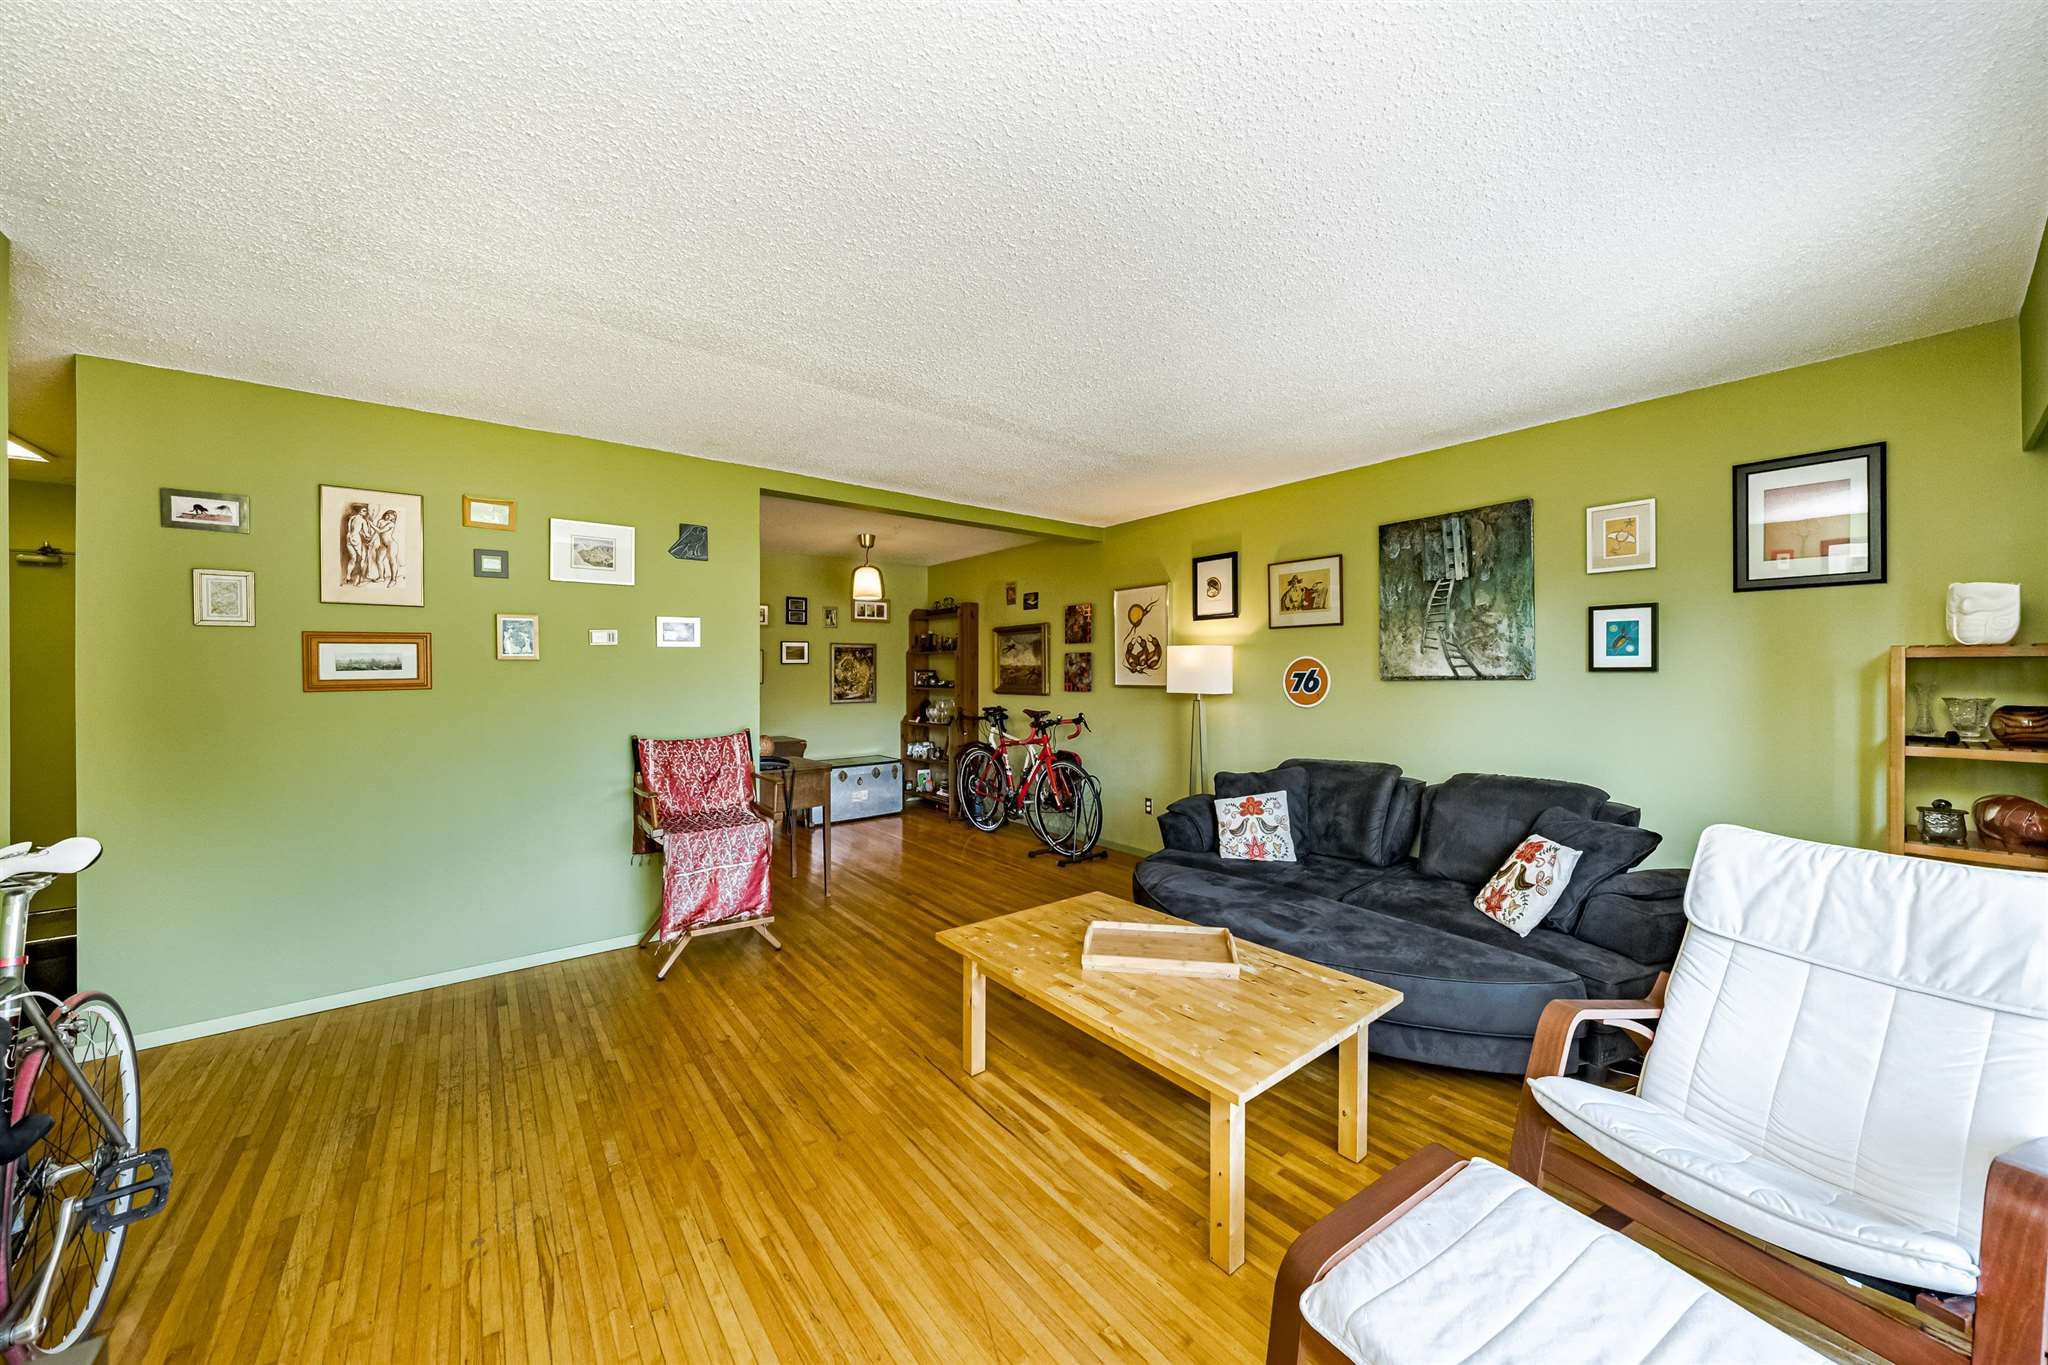 Photo 8: Photos: 57 2002 ST JOHNS Street in Port Moody: Port Moody Centre Condo for sale : MLS®# R2602252